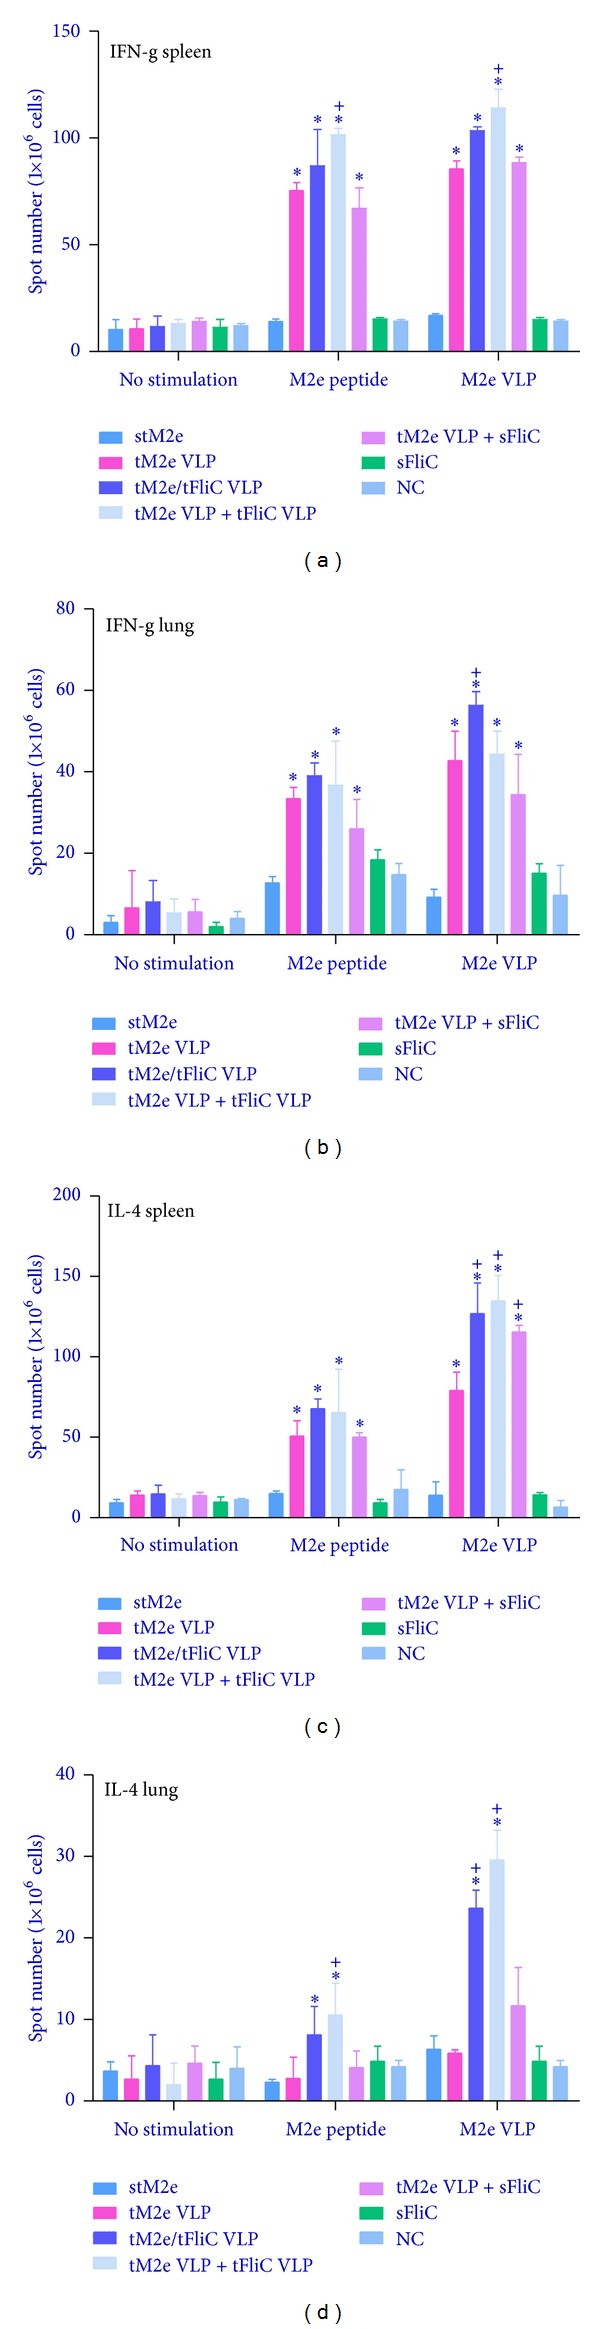 """Cellular immune responses. Cellular immune responses were assessed with cells from spleens and lungs of immunized mice. Cells from spleens ((a), (c)) and lungs ((b), (d)) were stimulated with M2e peptides and M2e VLPs for 40 hours, and cytokine-secreting cell colonies were determined by ELISPOT assay. Each group has 3 mice. The asterisk (∗) indicates a significant difference between G2 and G1, G3 and G1, G4 and G1, and G5 and G1. The """"+"""" indicates a significant difference between G3 and G2, G4 and G2, and G5 and G2."""